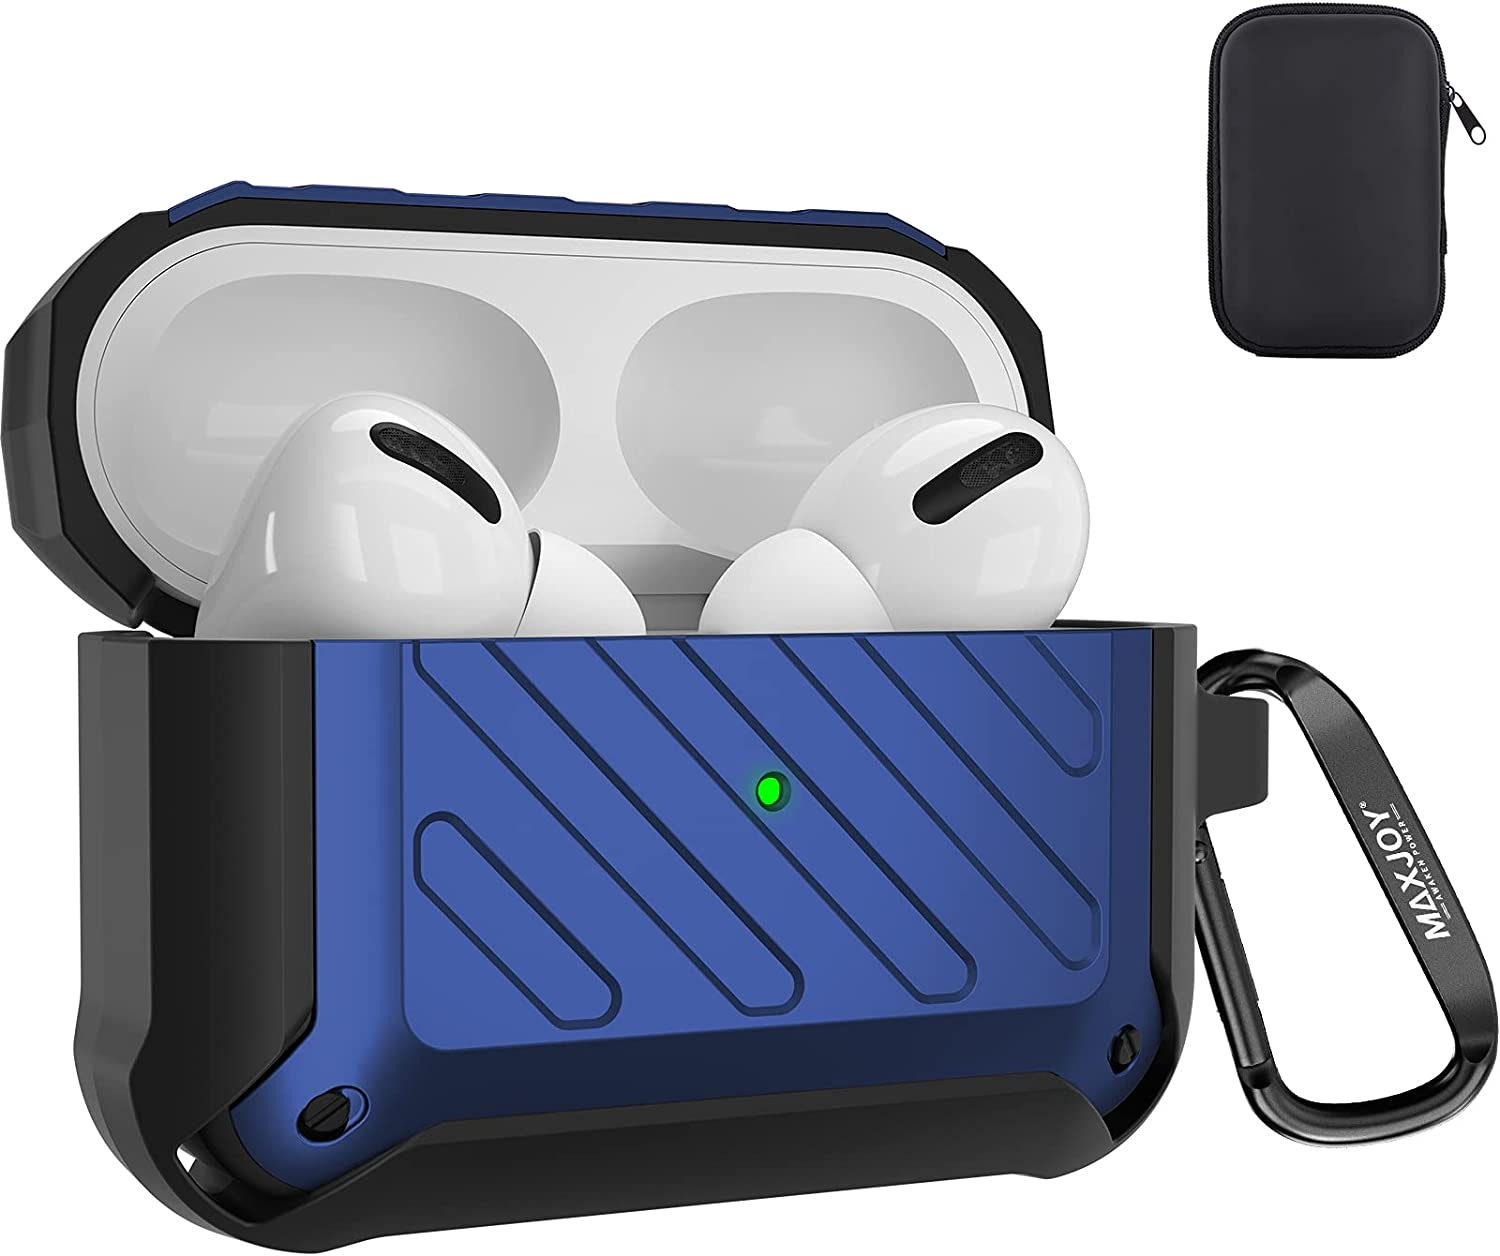 Maxjoy Compatible Airpods Pro Case Cover, Airpods Pro Protective Case Rugged Full-Body Hard Shell Shockproof Cover with Keychain Compatible with Apple Airpods Pro Charging Case Front LED, Dark Blue